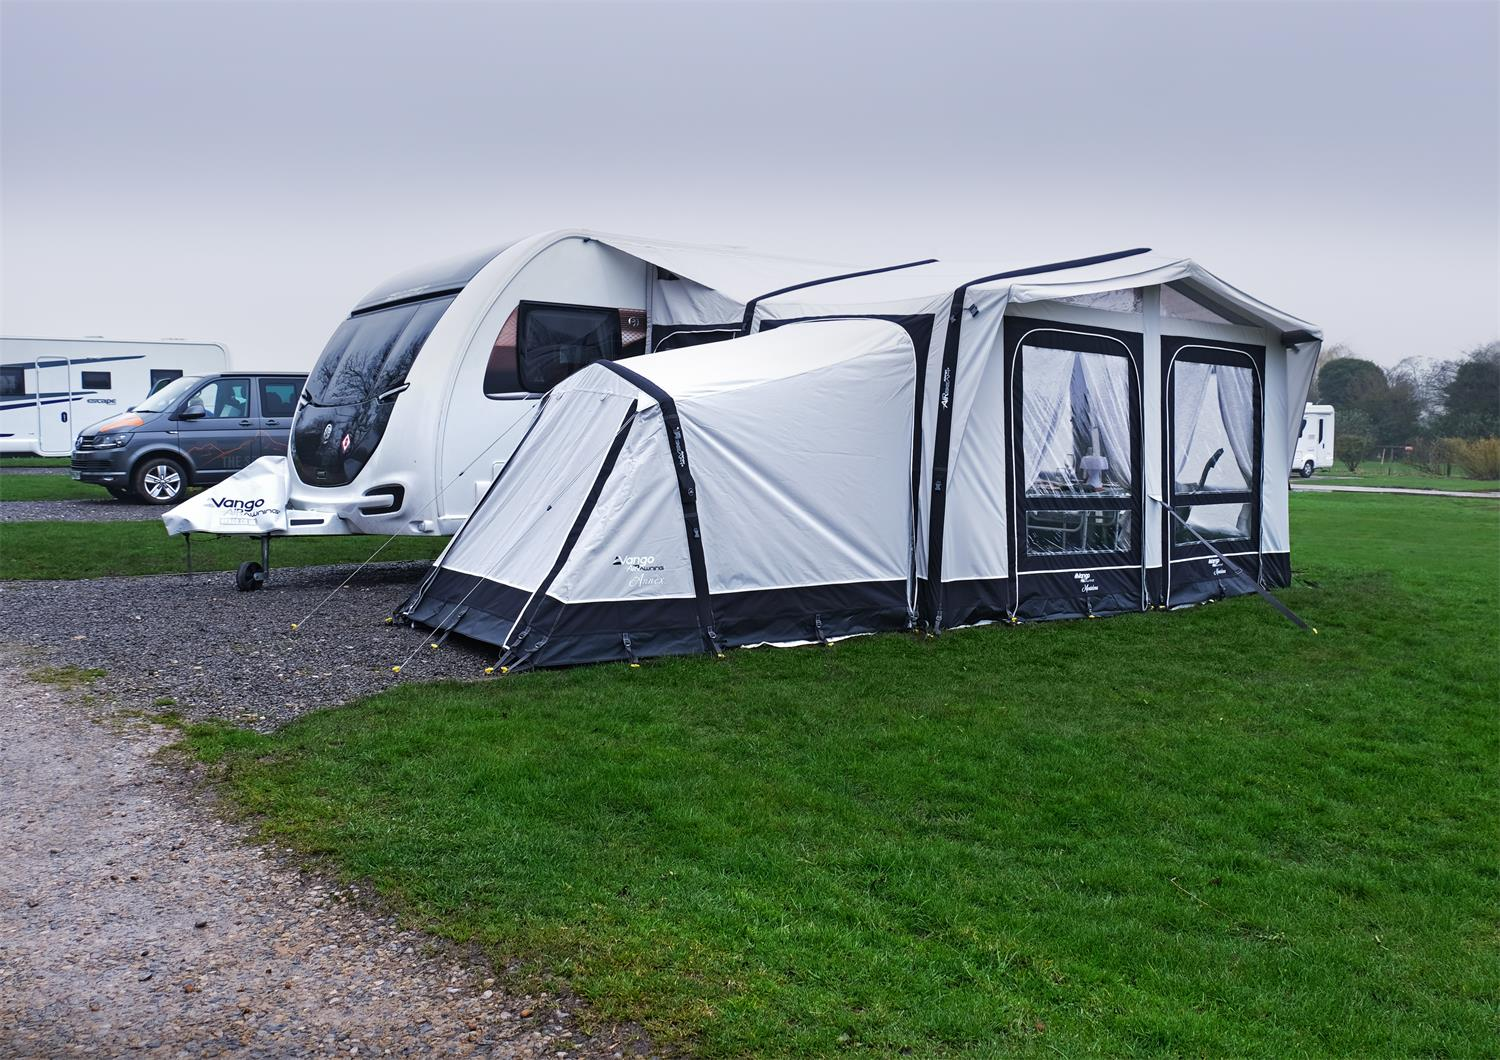 Vango's Montelena Caravan Awning can have an annex fitted.